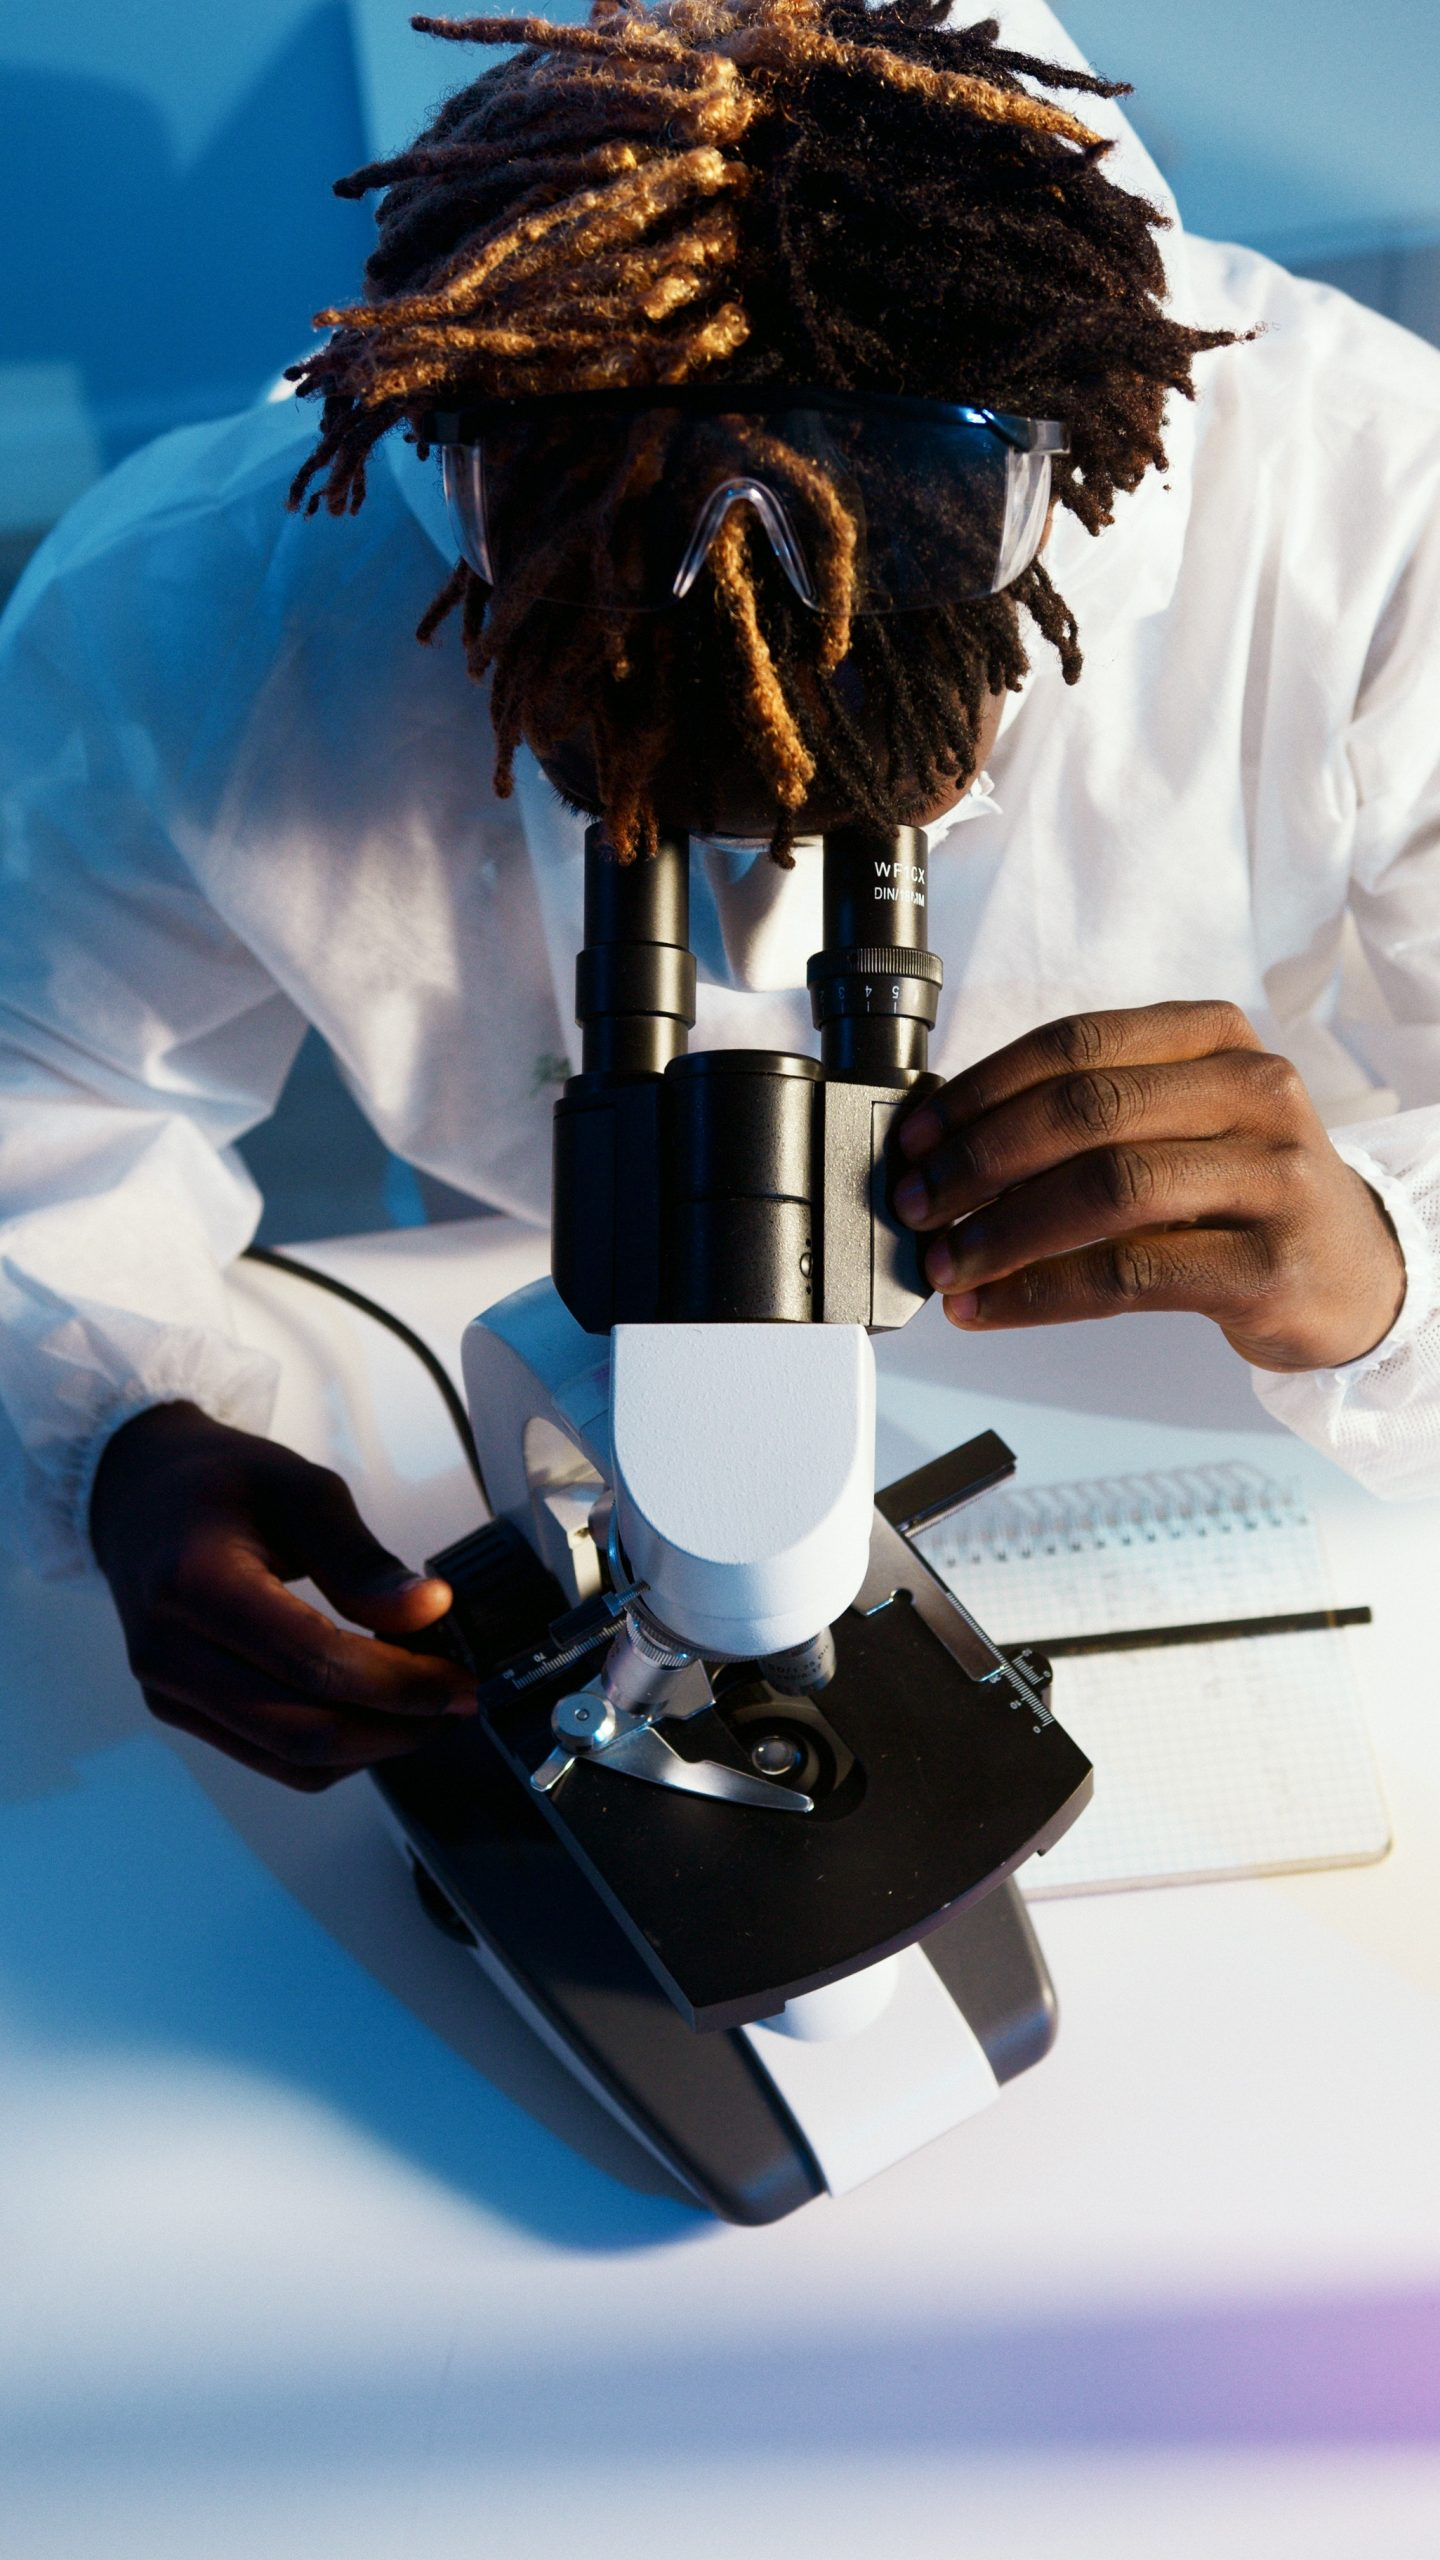 Black male scientist looking into microscope